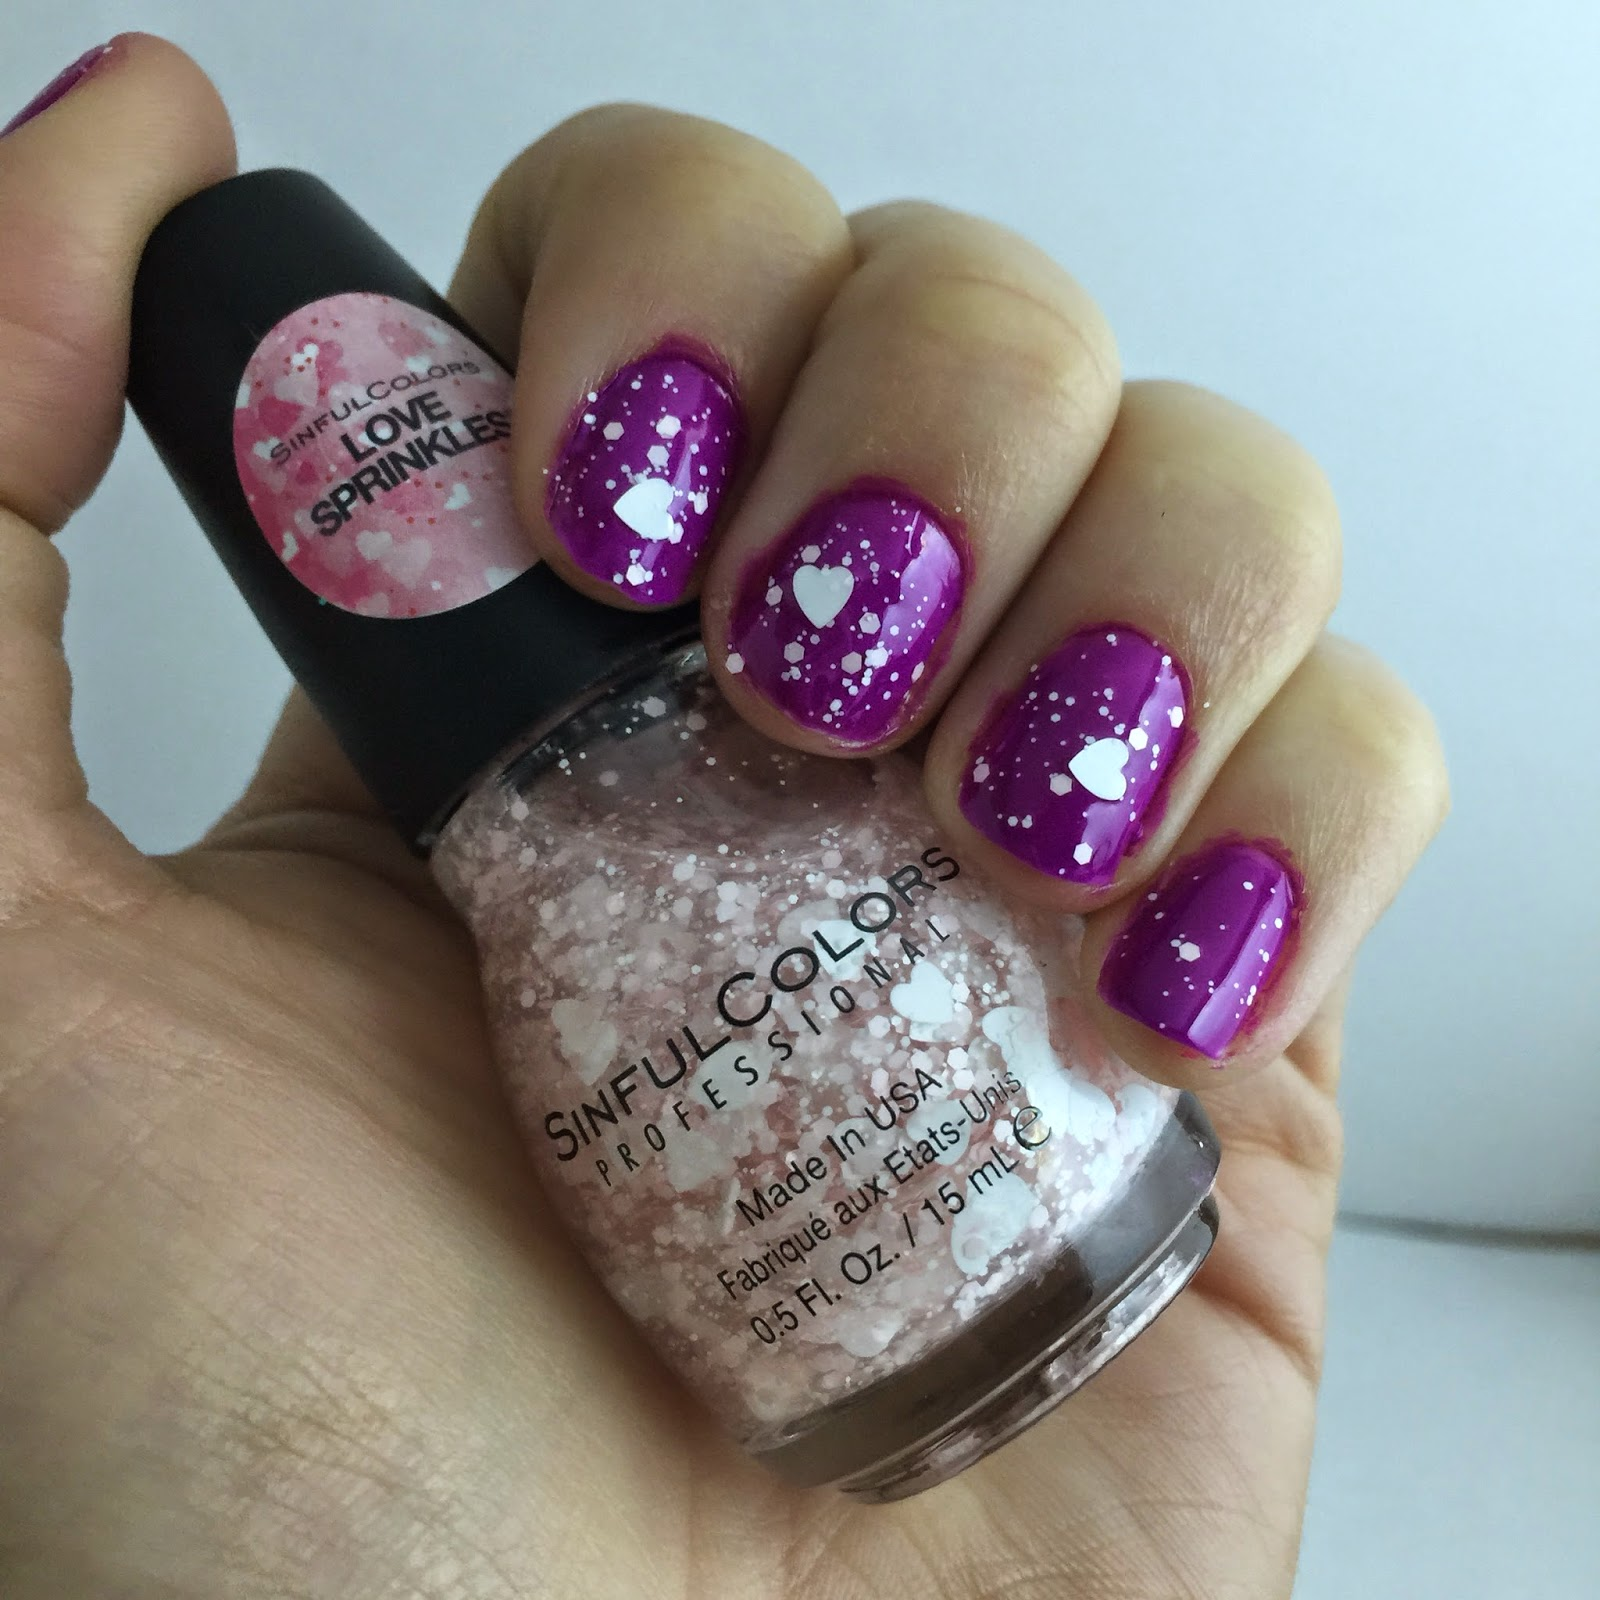 sinful colors nail polish in dream on and love sprinkles